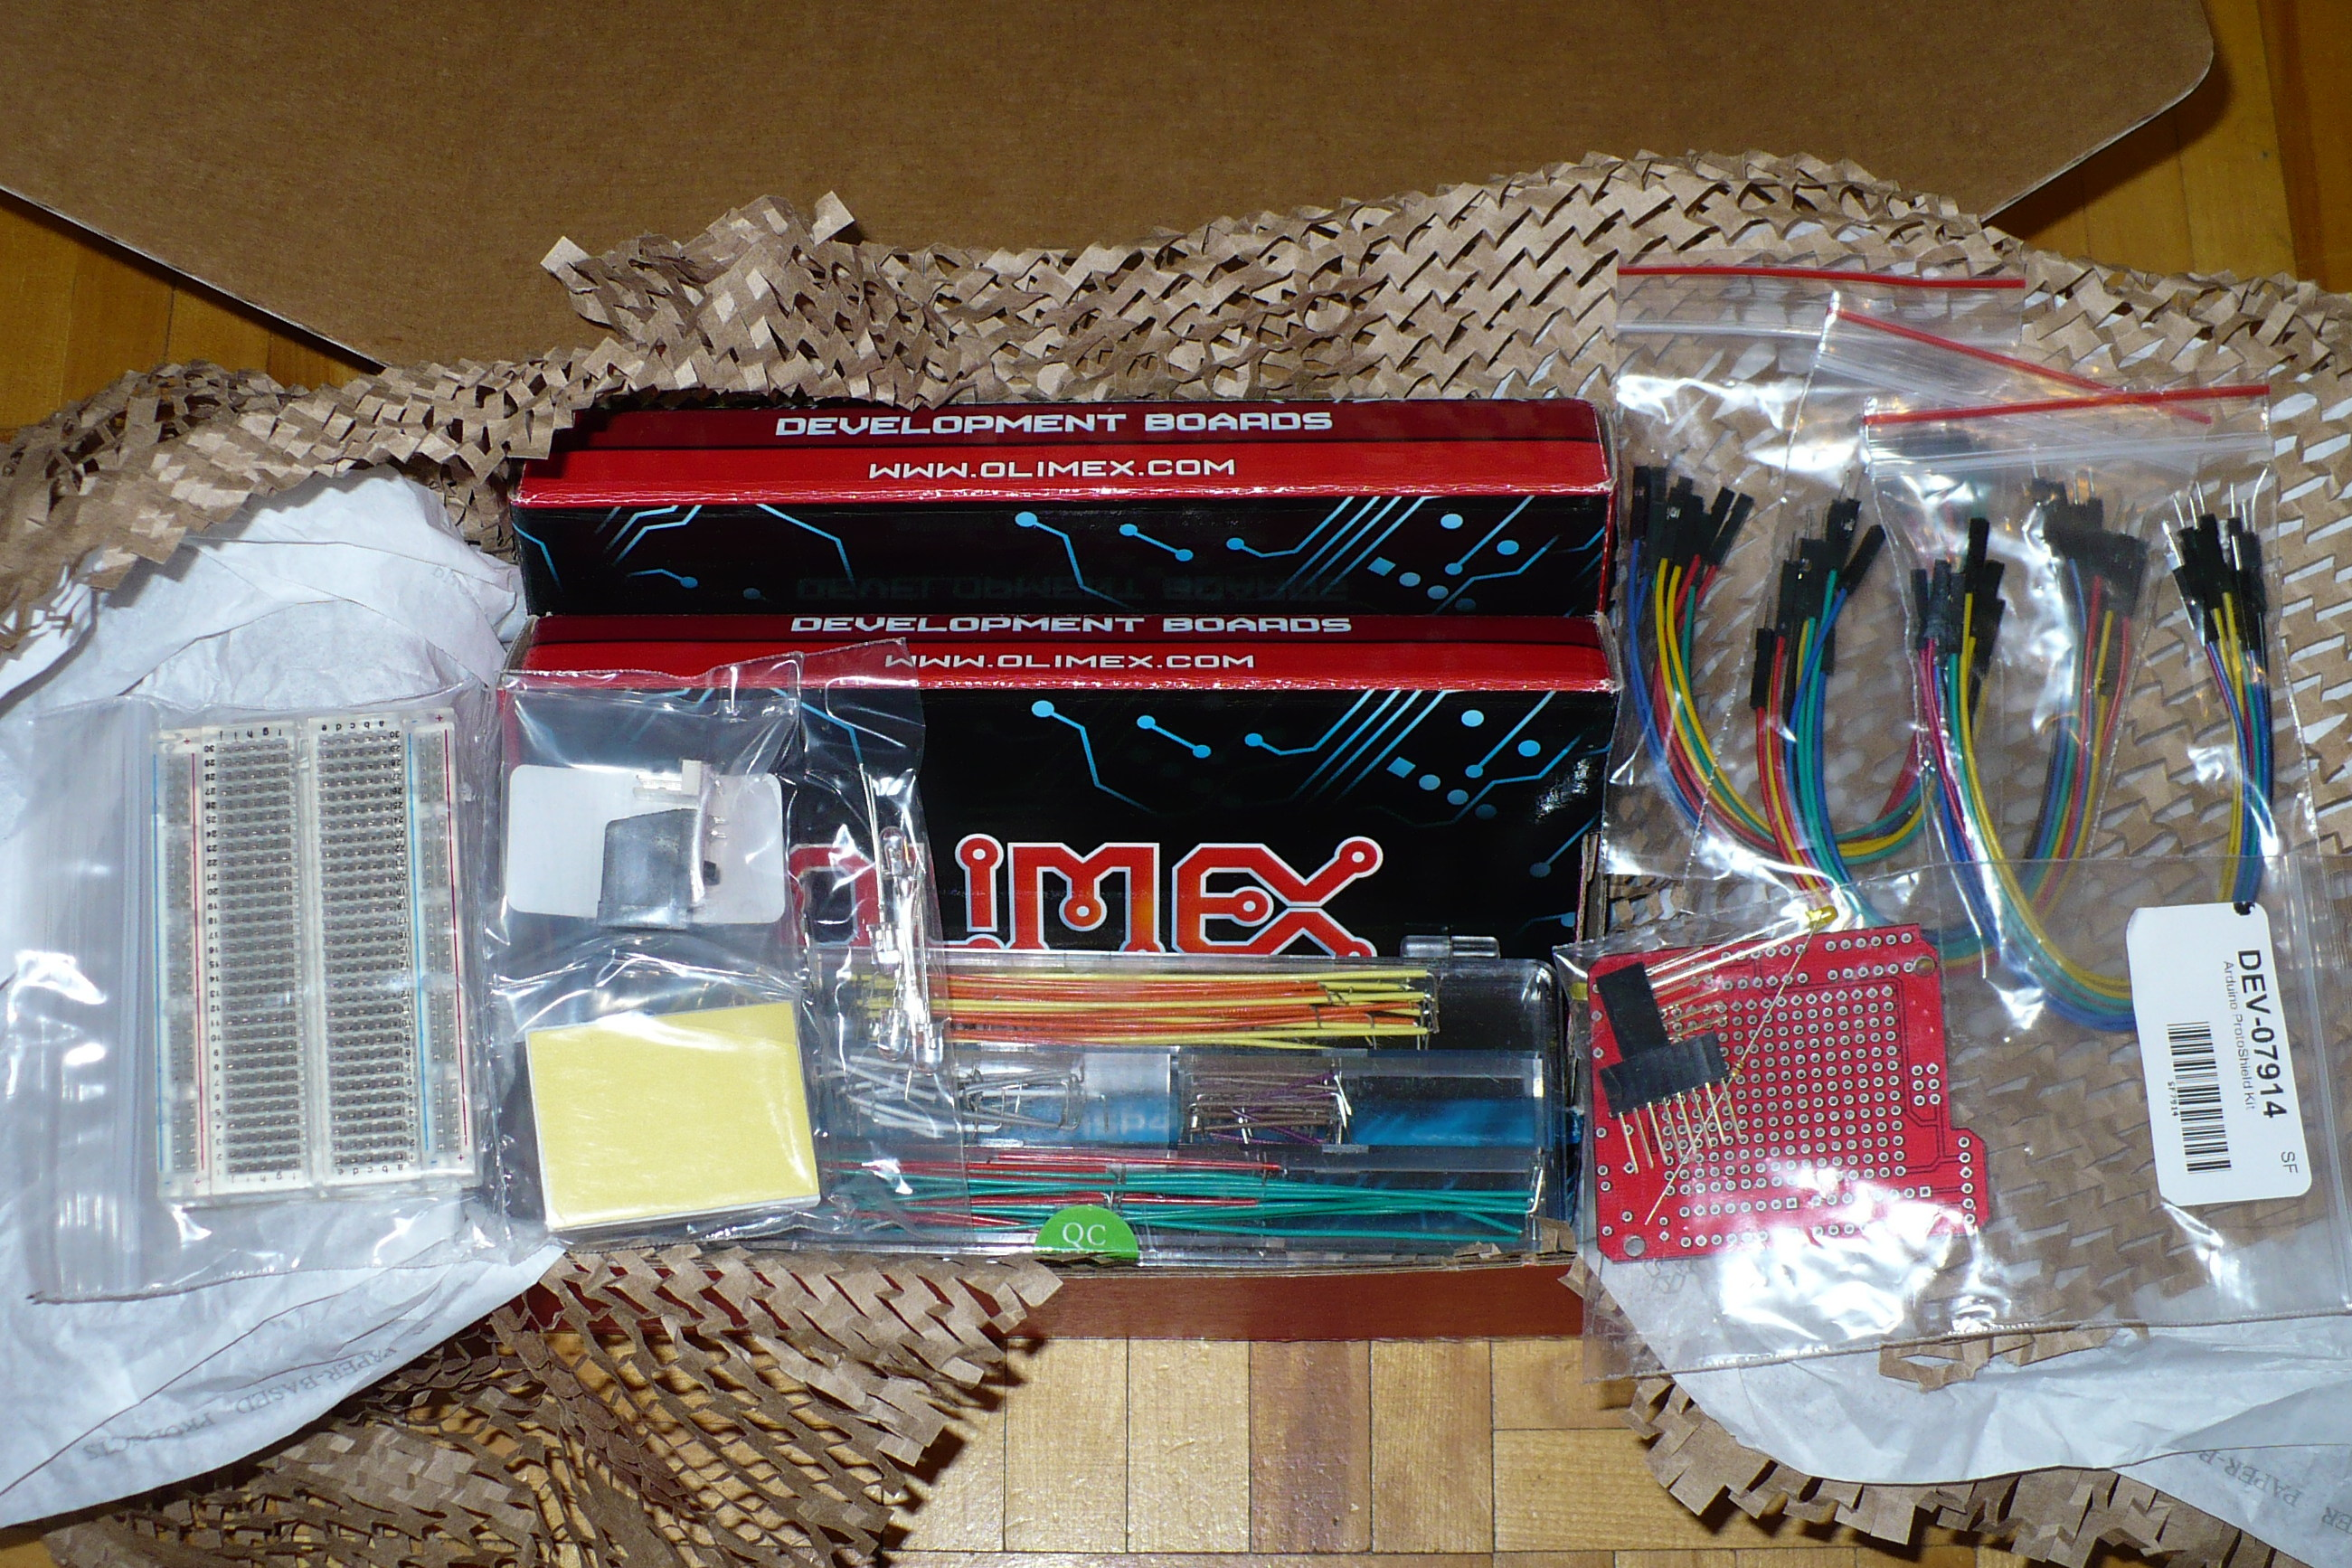 Sparkfun.com Stuff: Arduino Shield, Breadboarding Supplies, etc